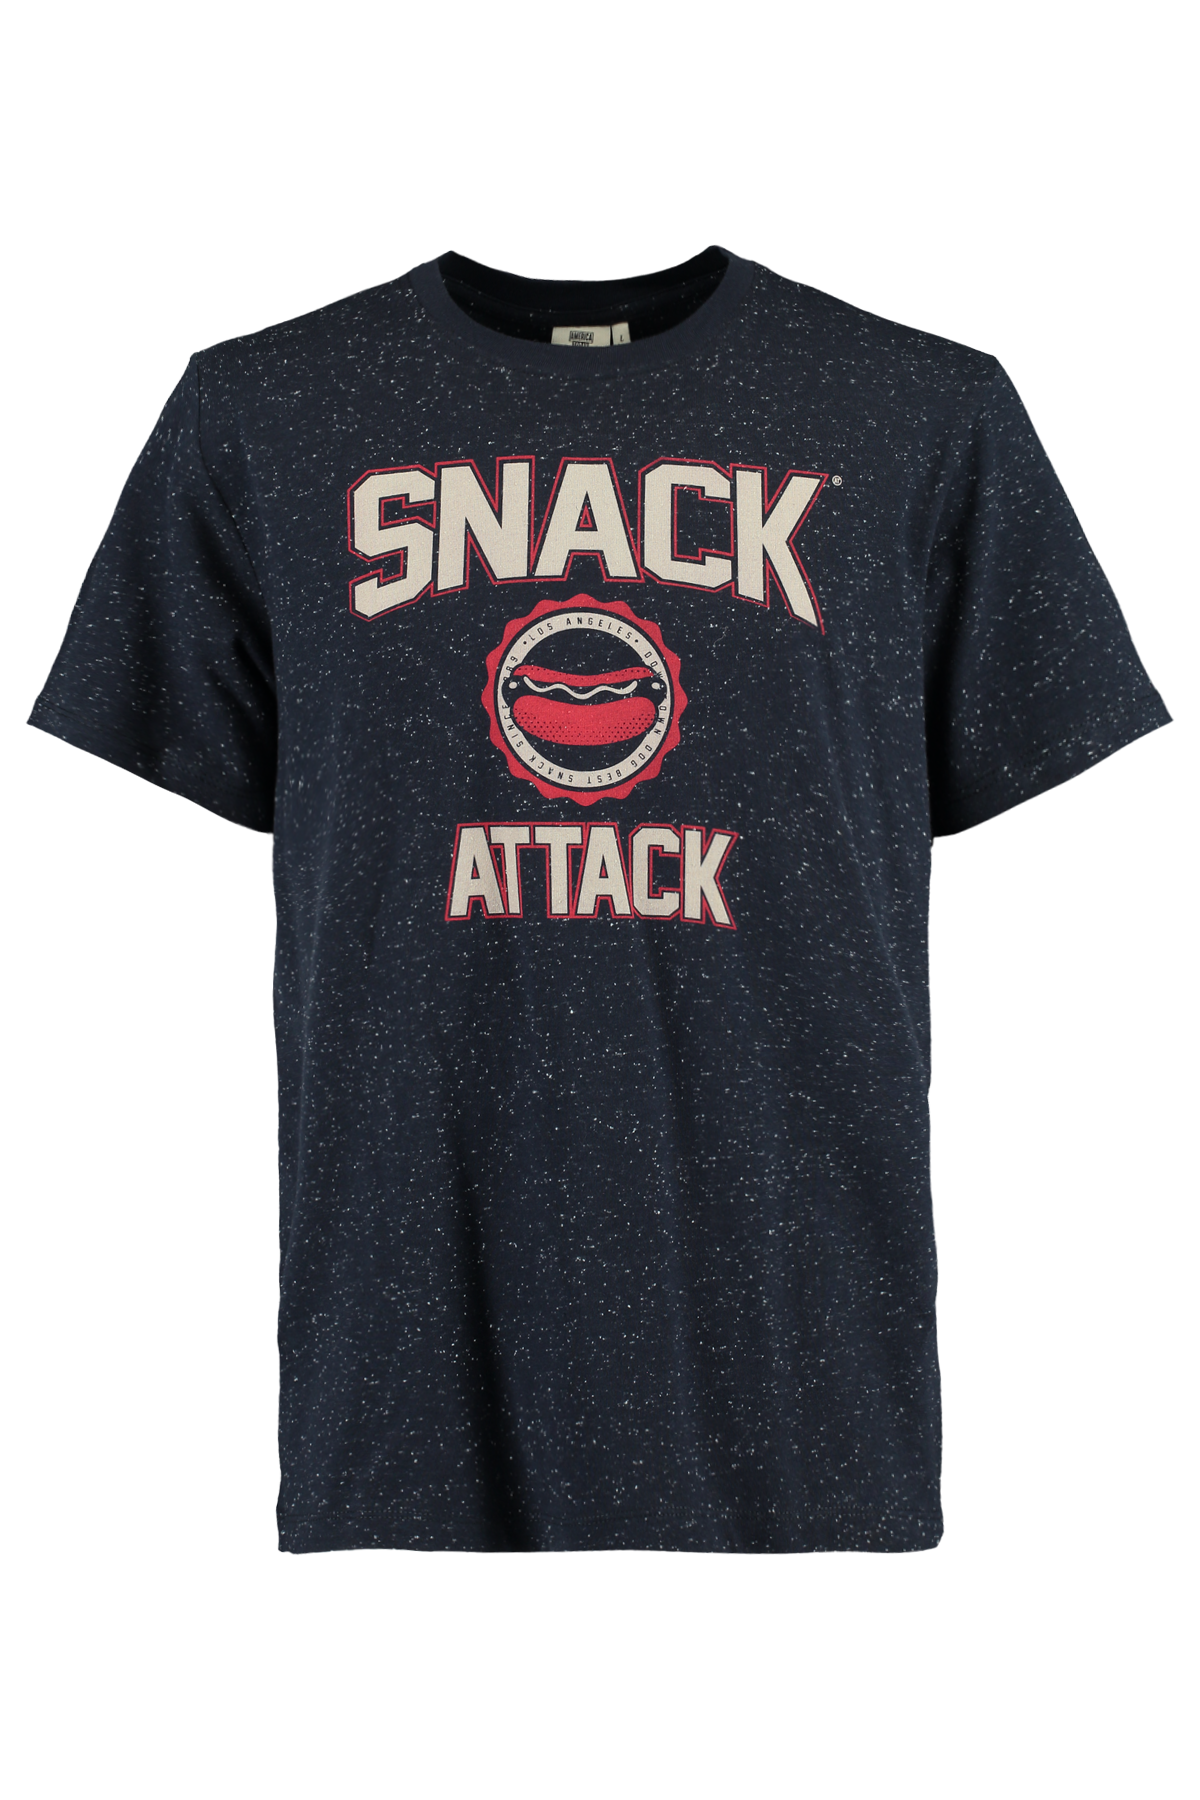 T-shirt Ed snack attack